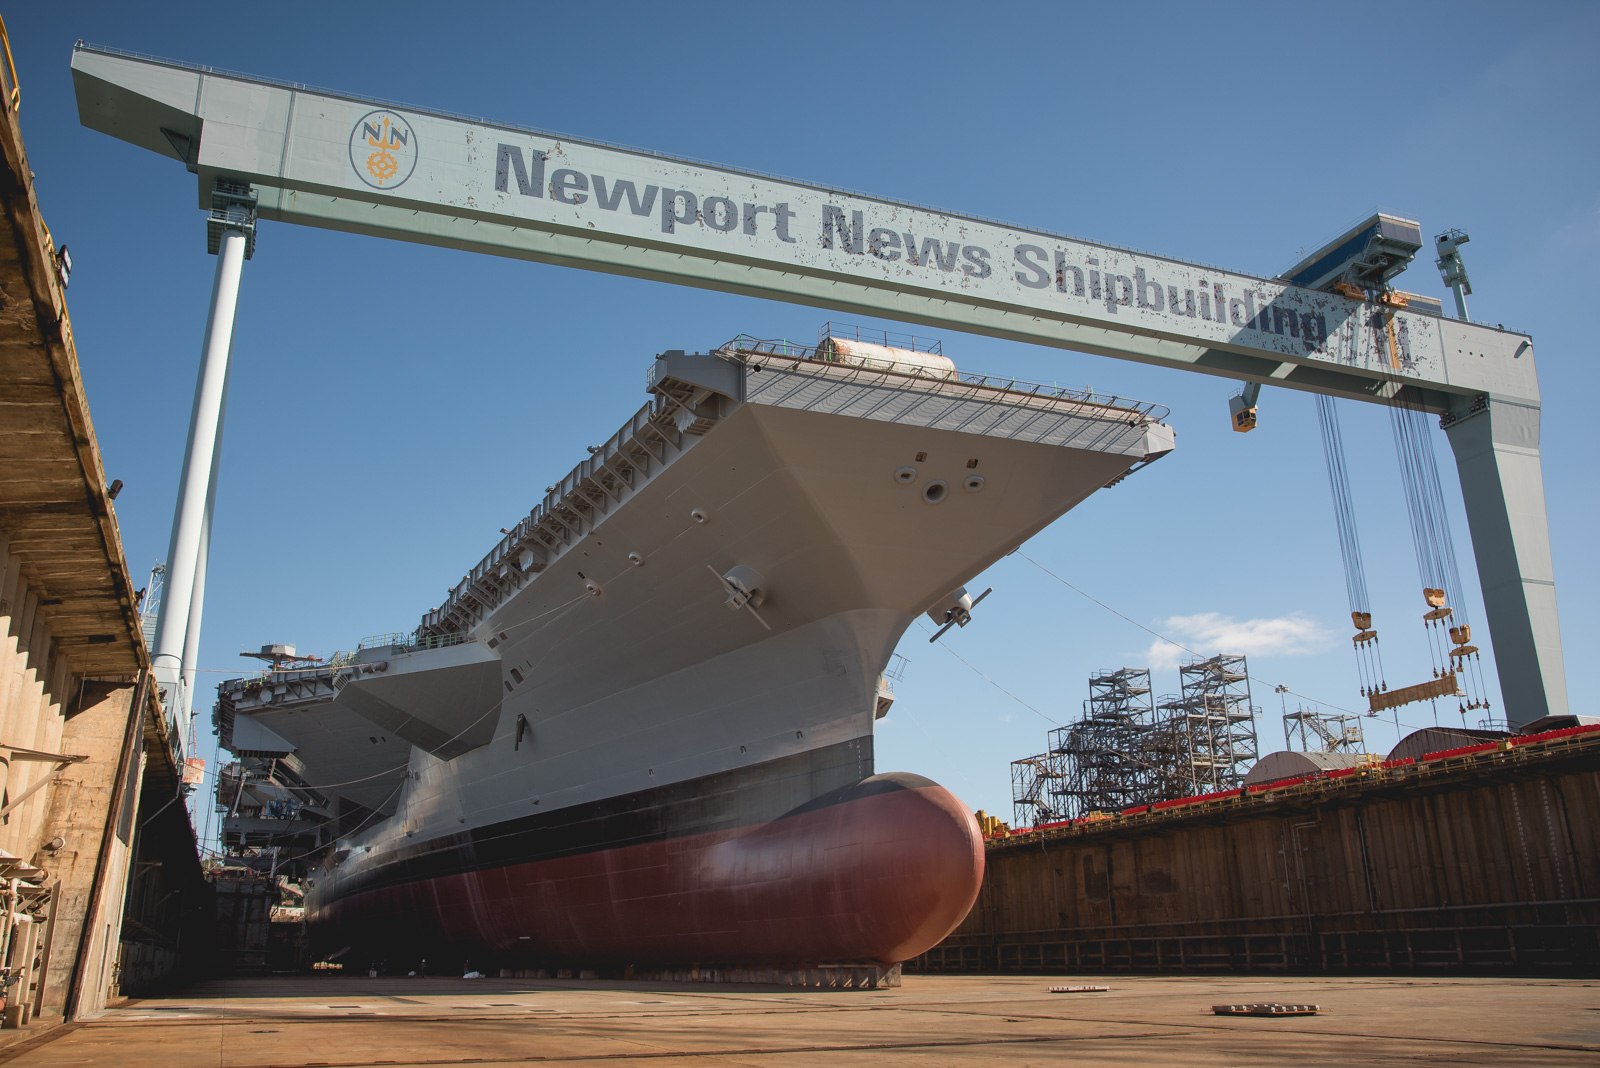 John F. Kennedy (CVN 79) in Dry Dock 12 the day before Newport News Shipbuilding floods the dry dock to move the ship.